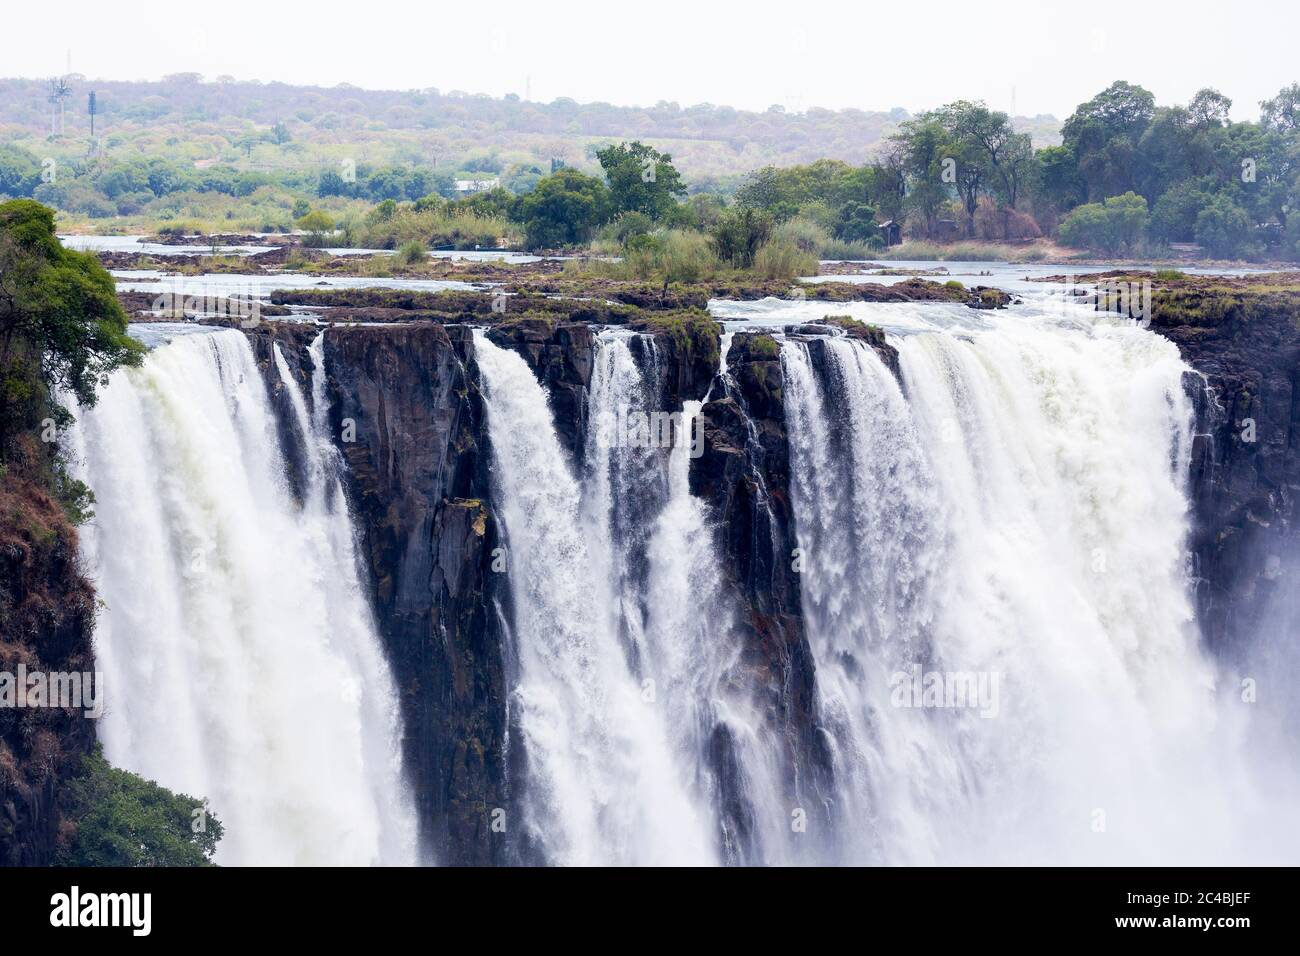 Victoria Falls, waterfall on the Zambezi River, cascades of water tumbling over a steep cliff. Stock Photo